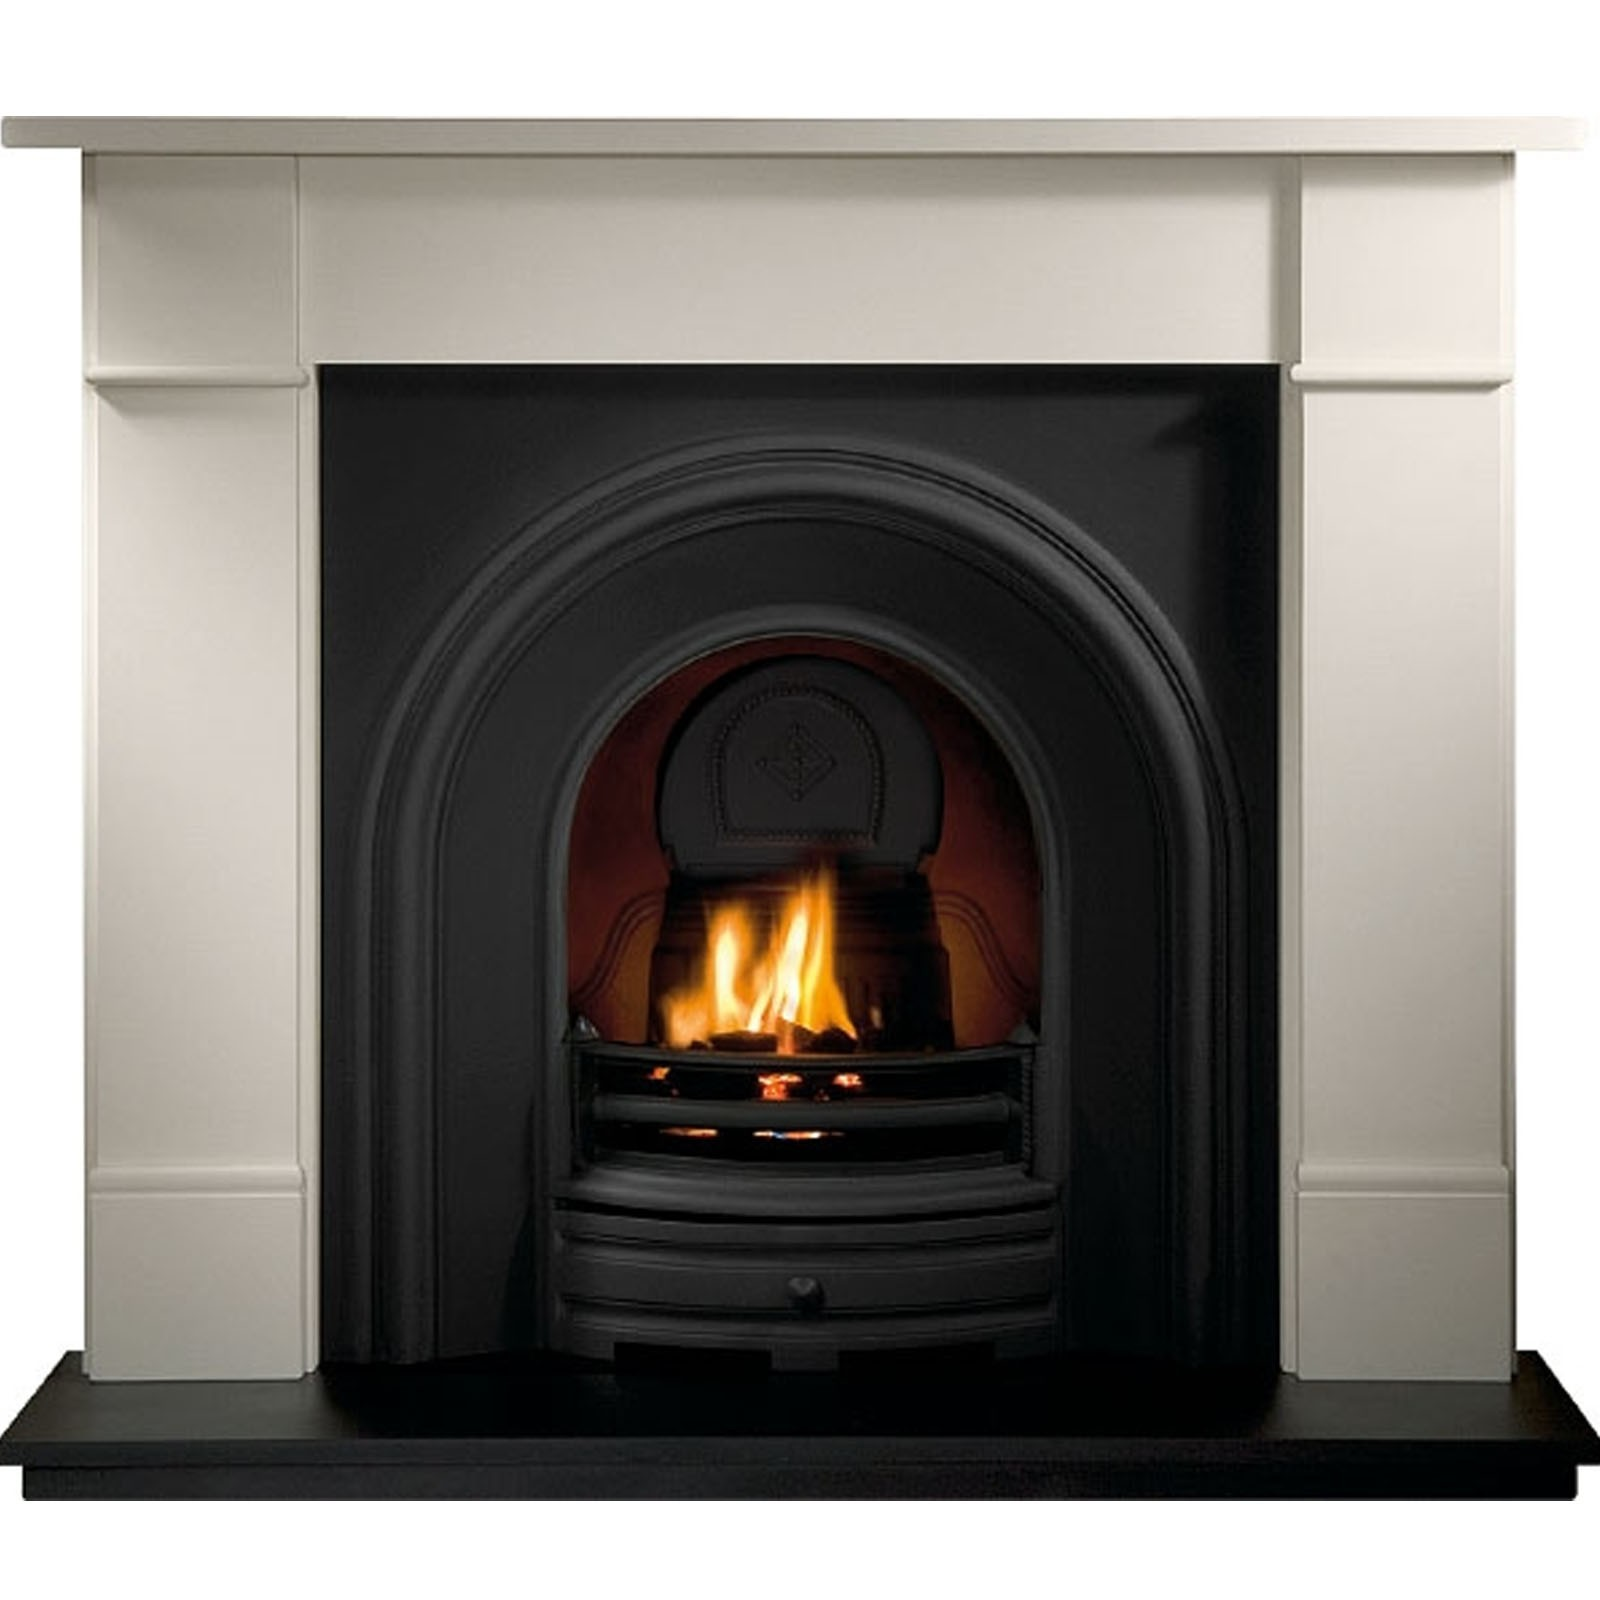 beautiful fire gallery brompton stone fireplace includes jubilee